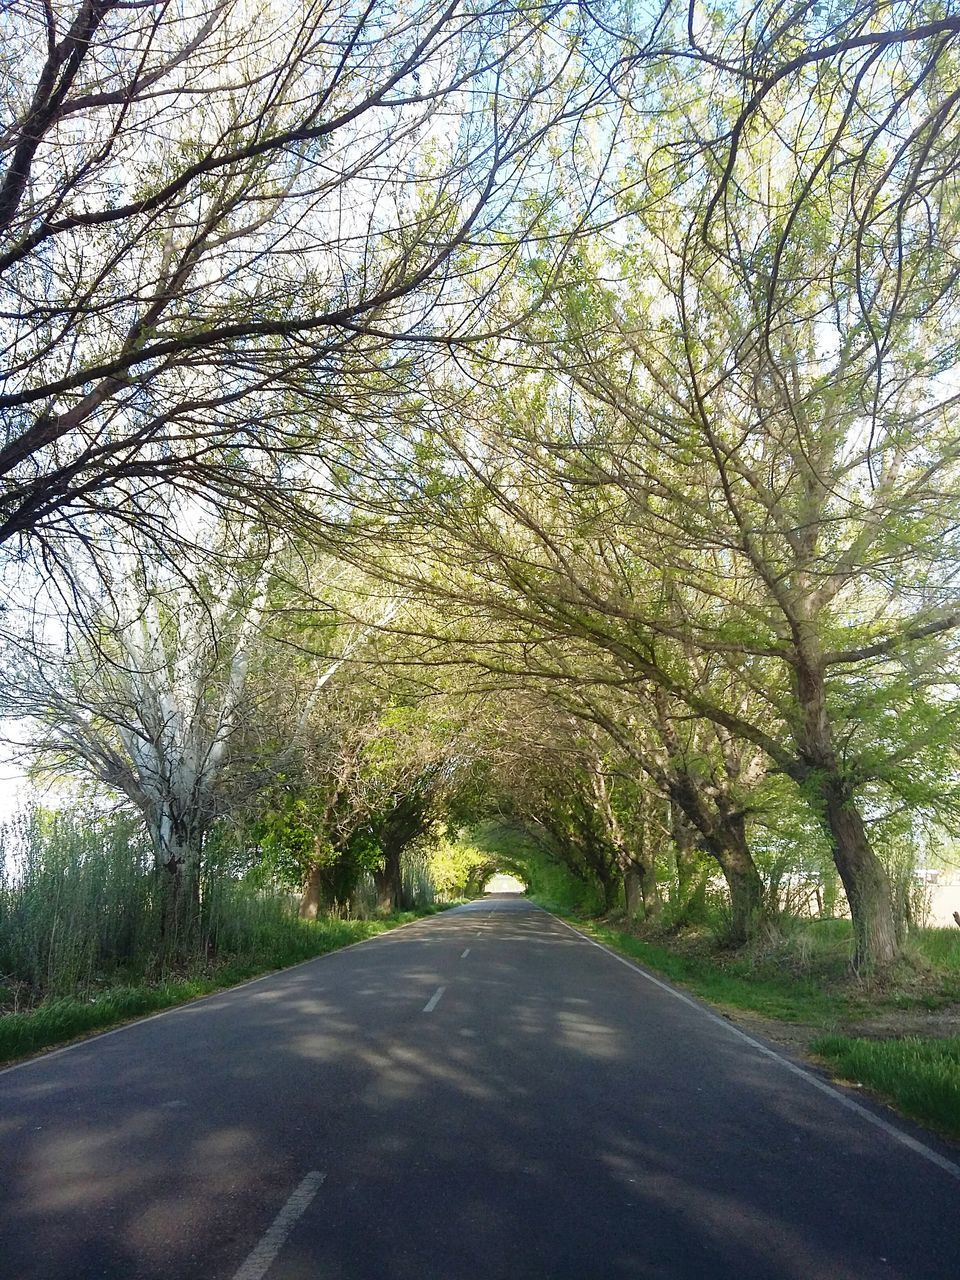 tree, the way forward, road, nature, transportation, tranquility, diminishing perspective, day, tranquil scene, scenics, outdoors, growth, no people, landscape, beauty in nature, branch, sky, grass